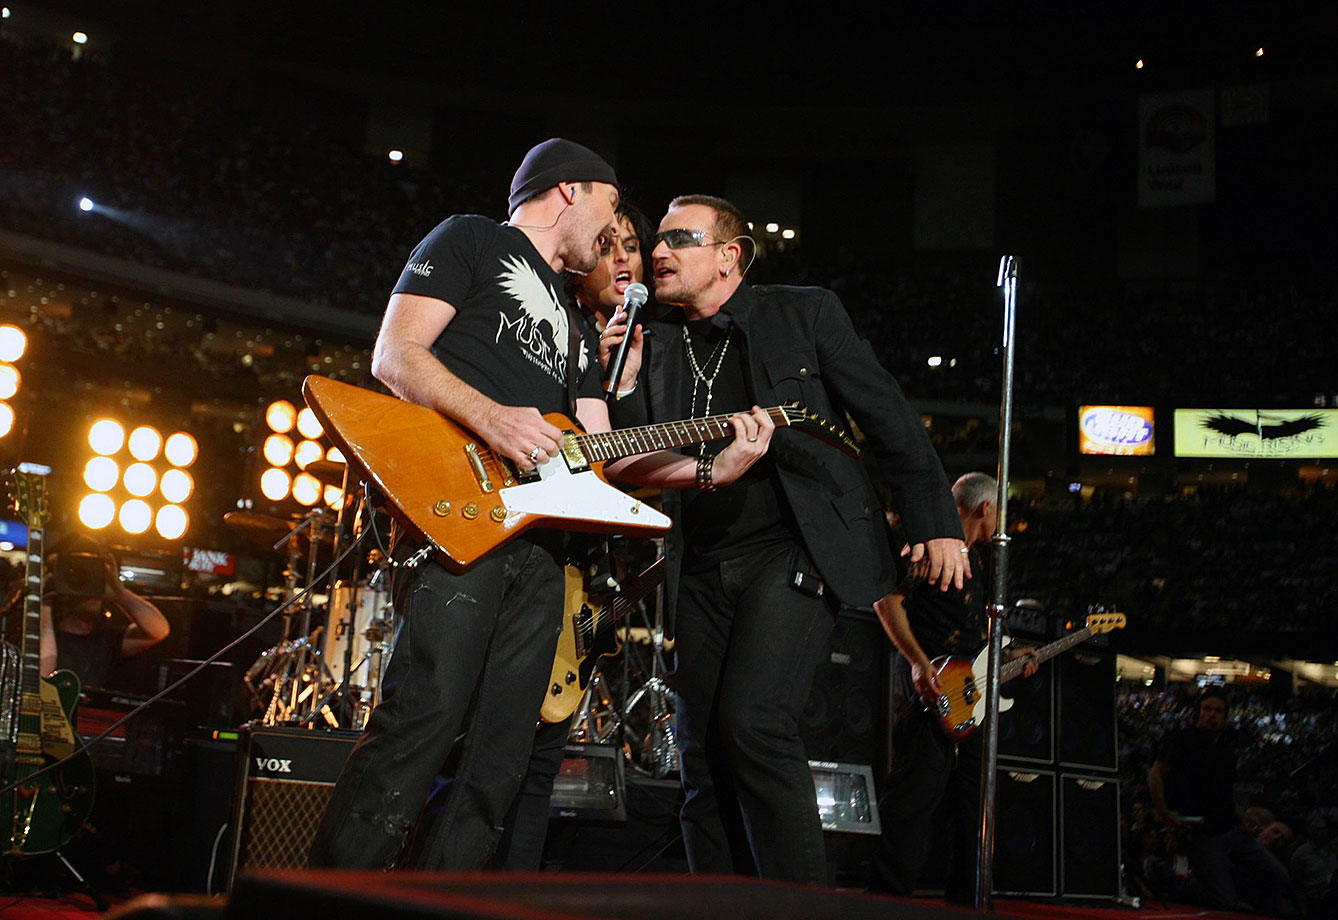 Sept. 25, 2006: U2 and Green Day perform before the Saints-Falcons game at the Superdome.